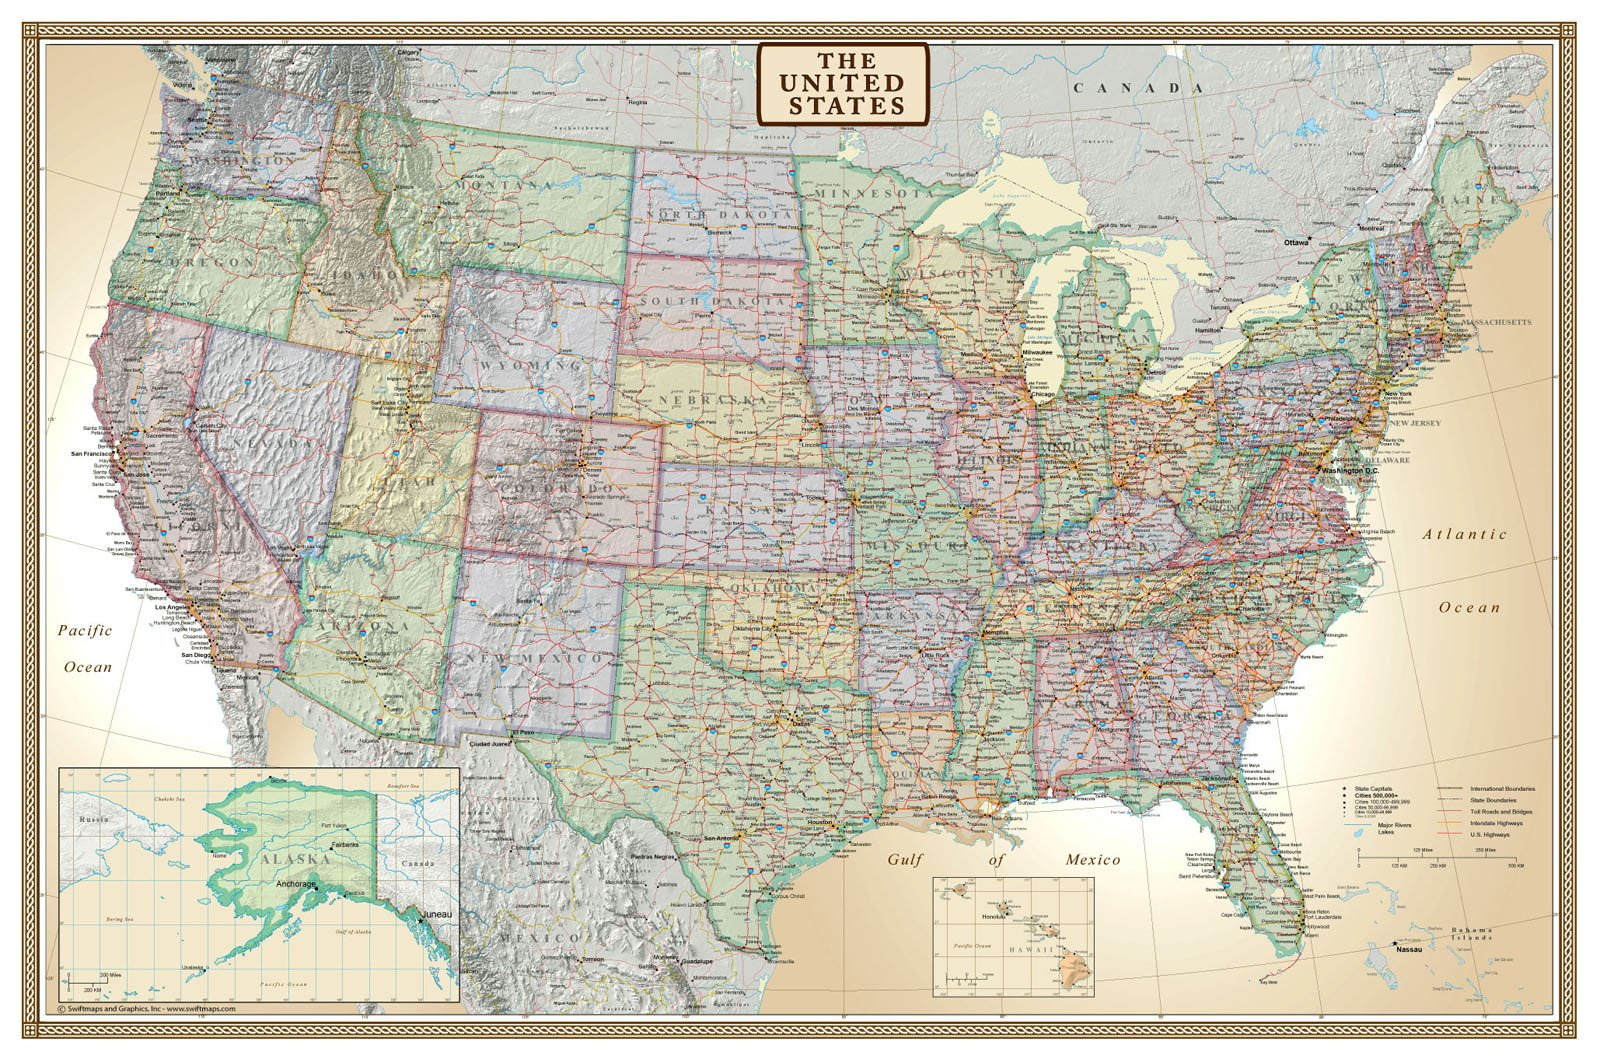 Large Us Map: Amazon.com